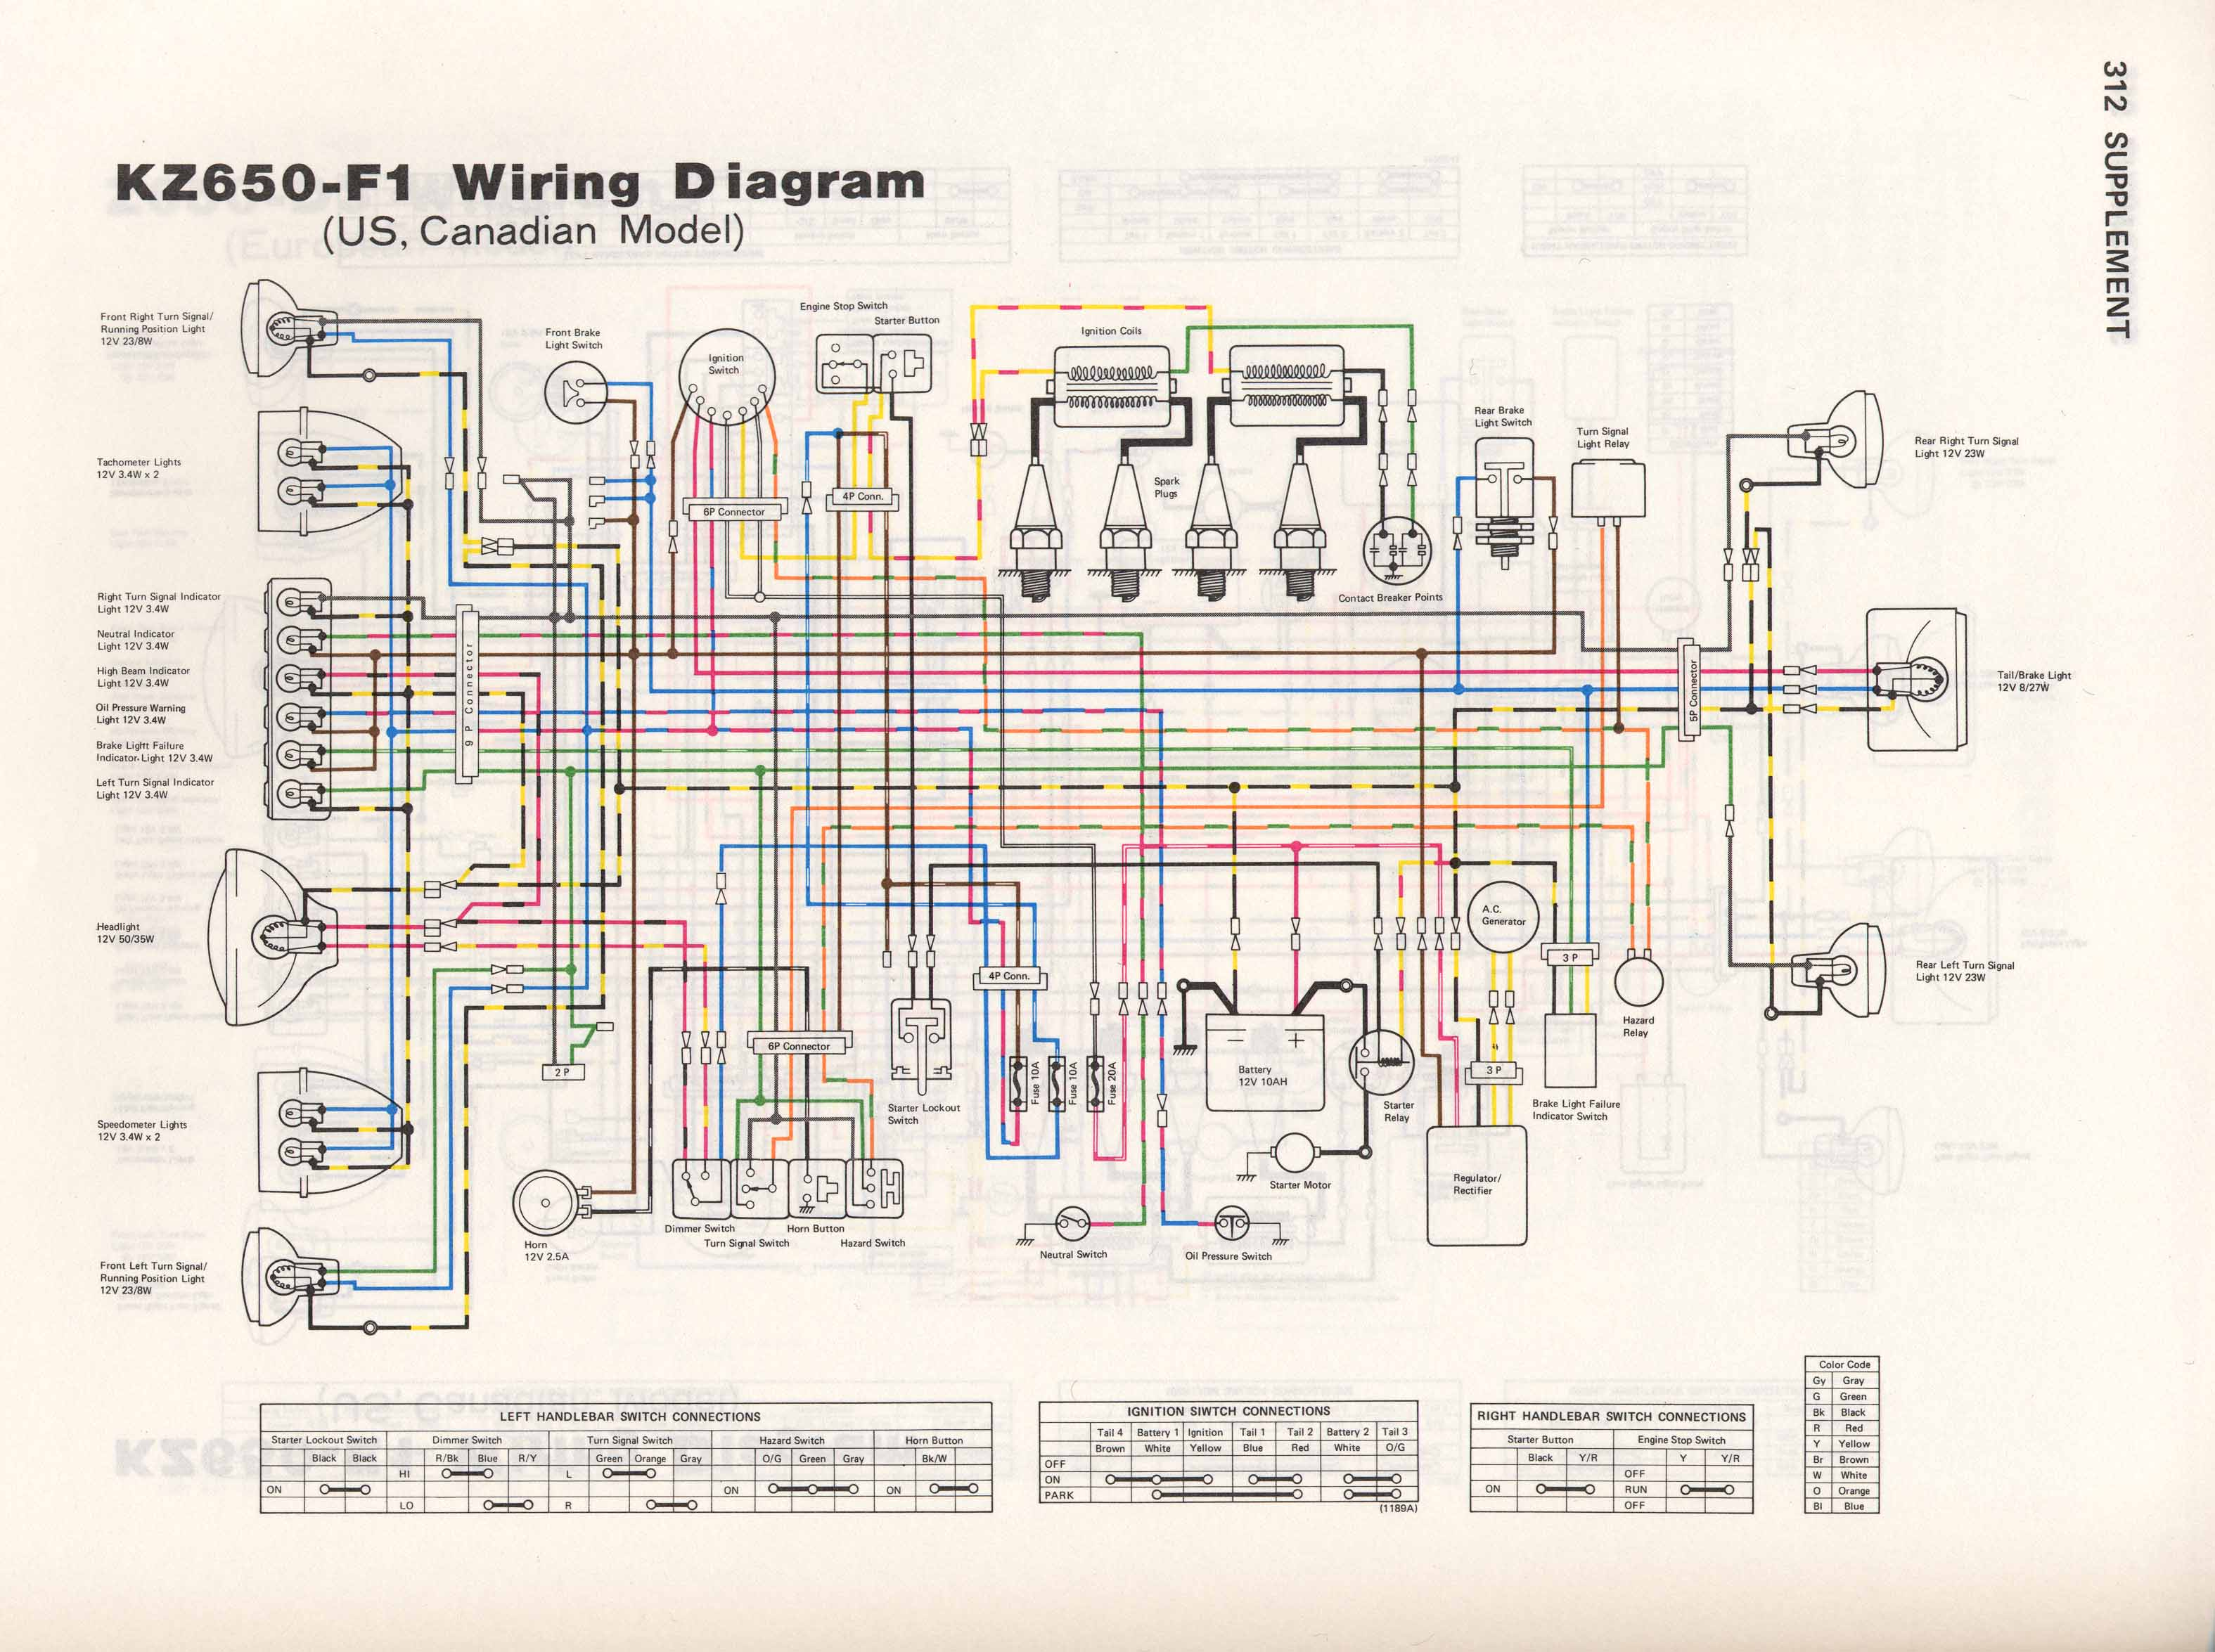 KZ650 F1 kz650 info wiring diagrams 1980 kawasaki kz750 wiring diagram at aneh.co